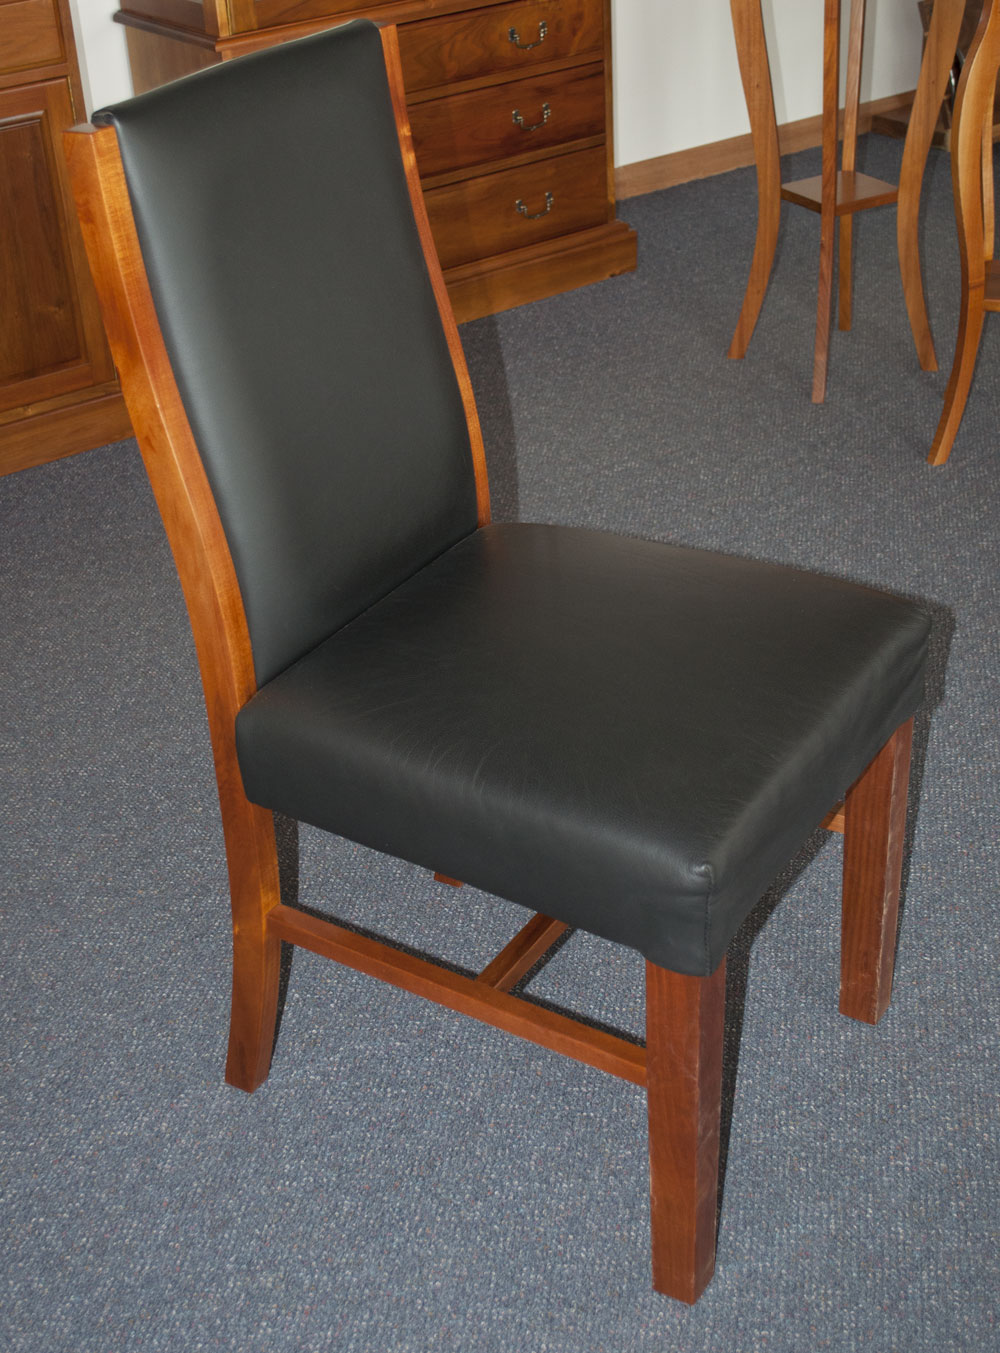 Fully Uphostered Chair - Turners Blackwood Furniture